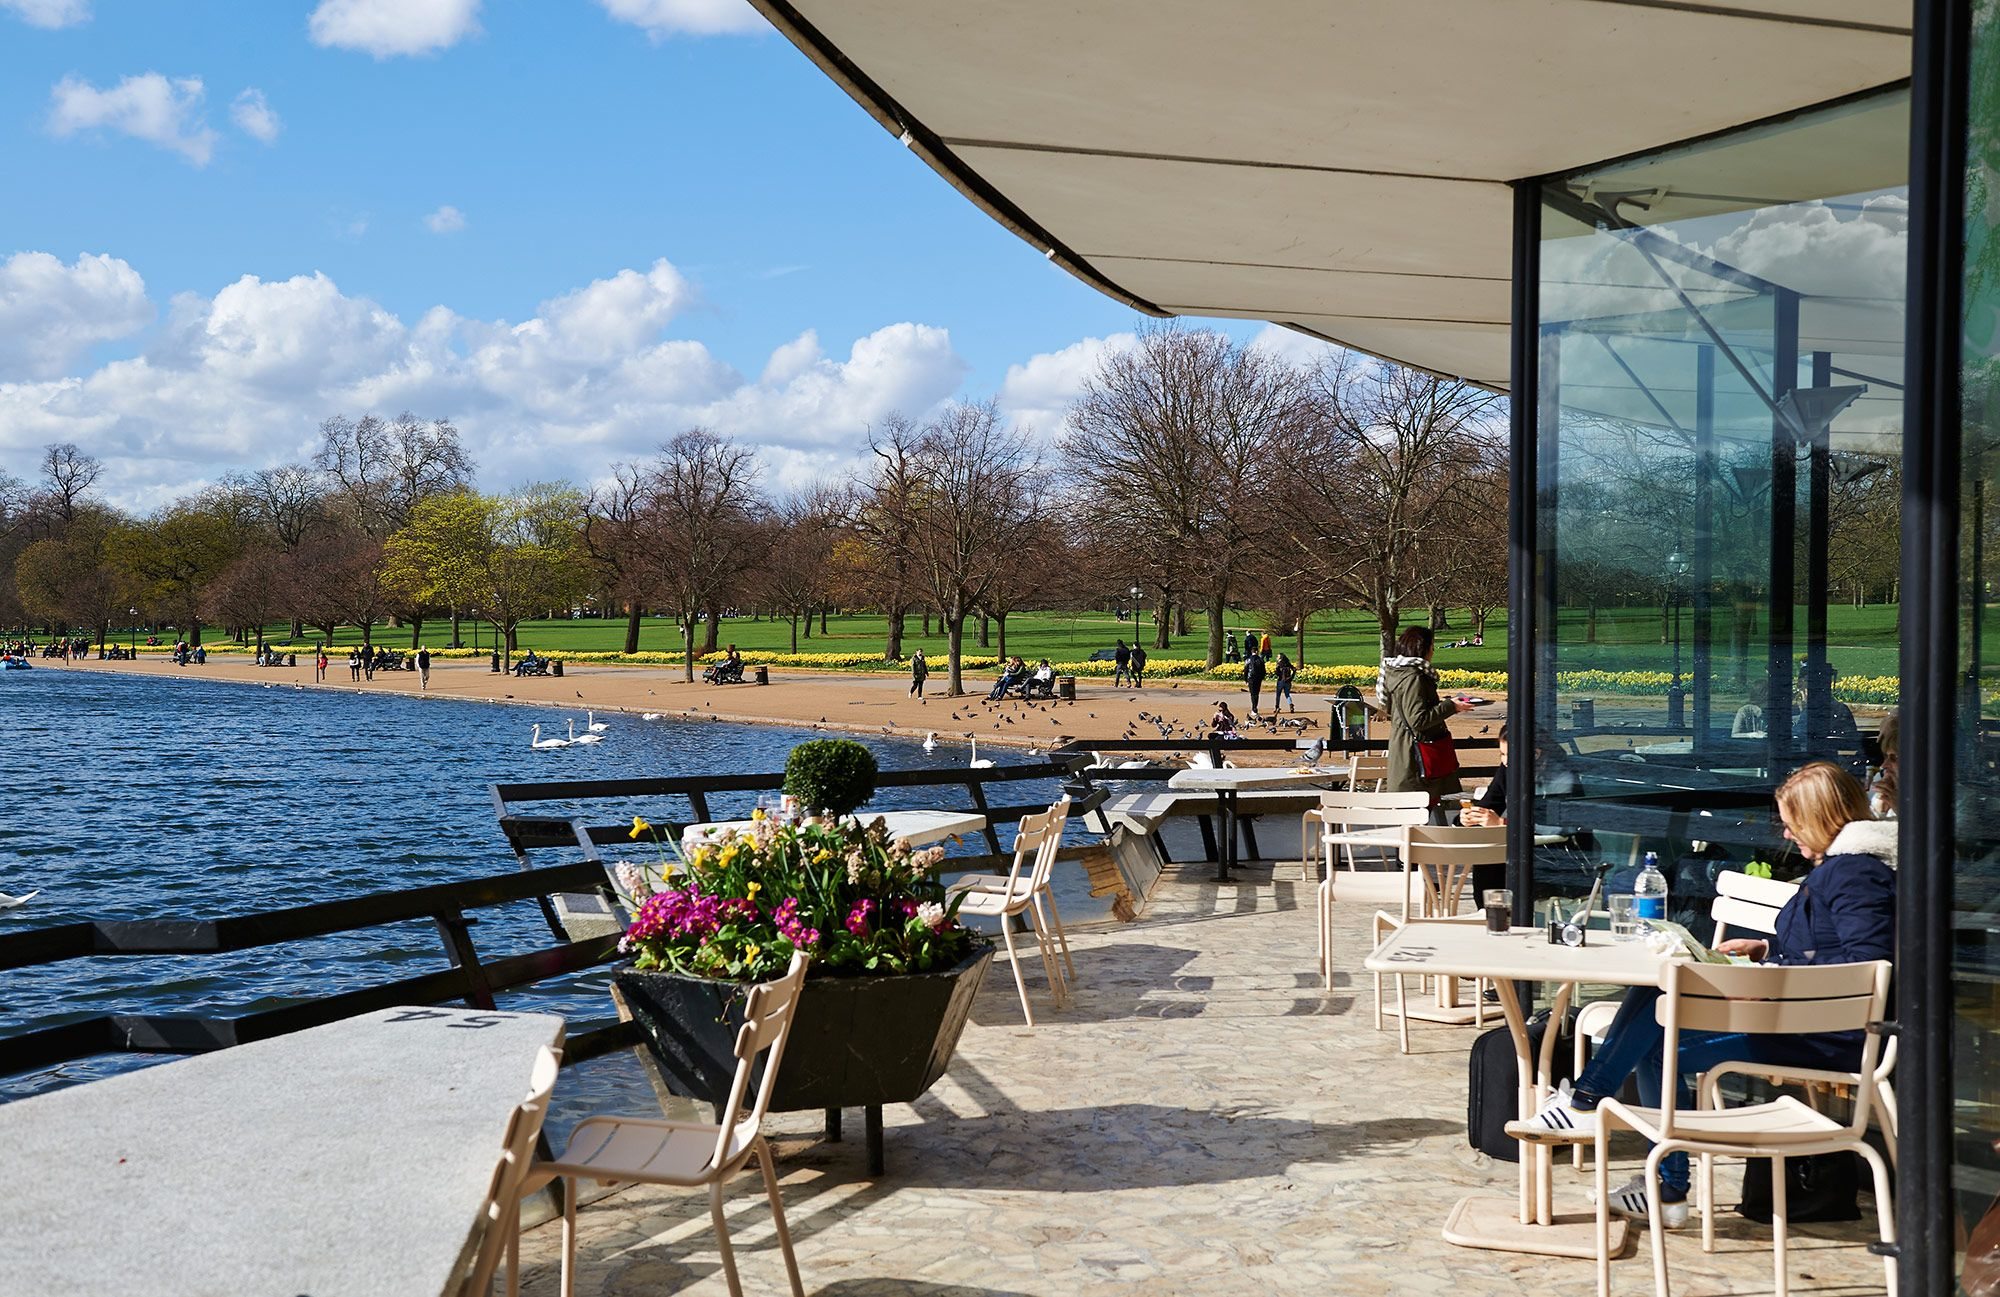 ROYAL PARKS LONDON: TOP THINGS TO DO THIS SUMMER